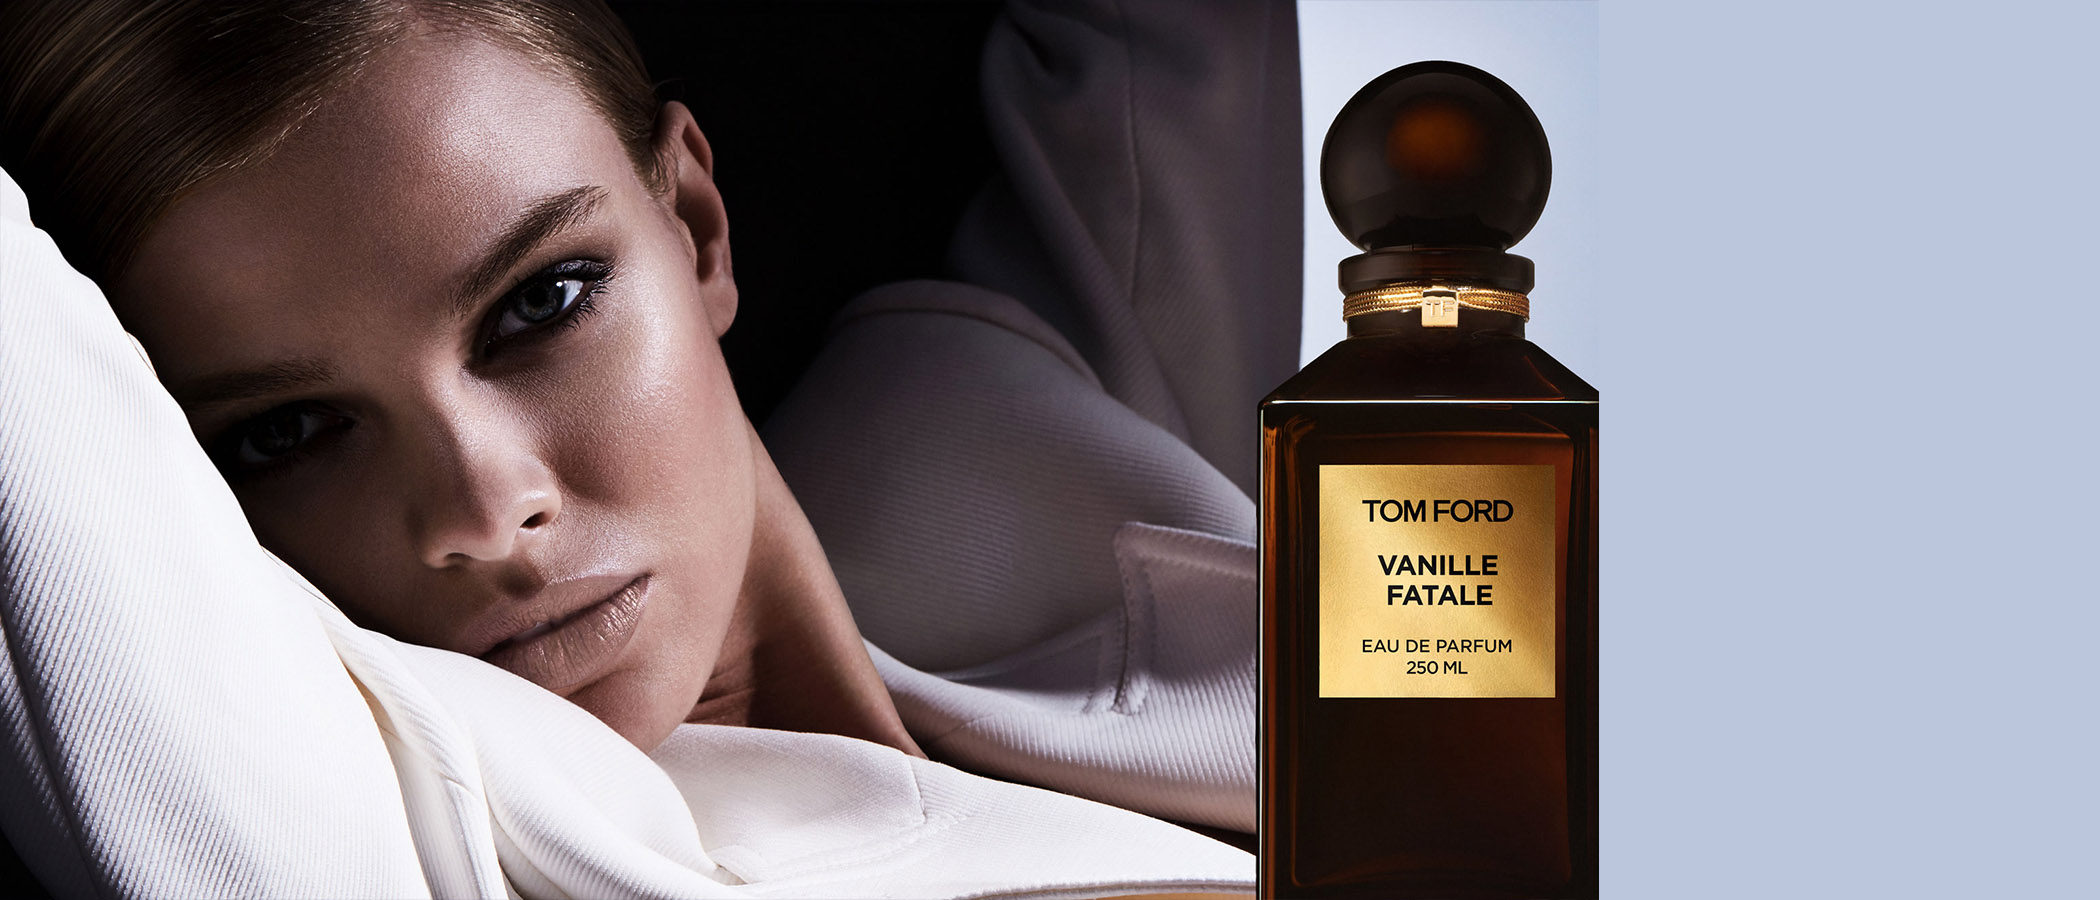 Tom Ford presenta 'Vanille Fatale', su nueva fragancia unisex de la exclusiva colección 'Private Blend'